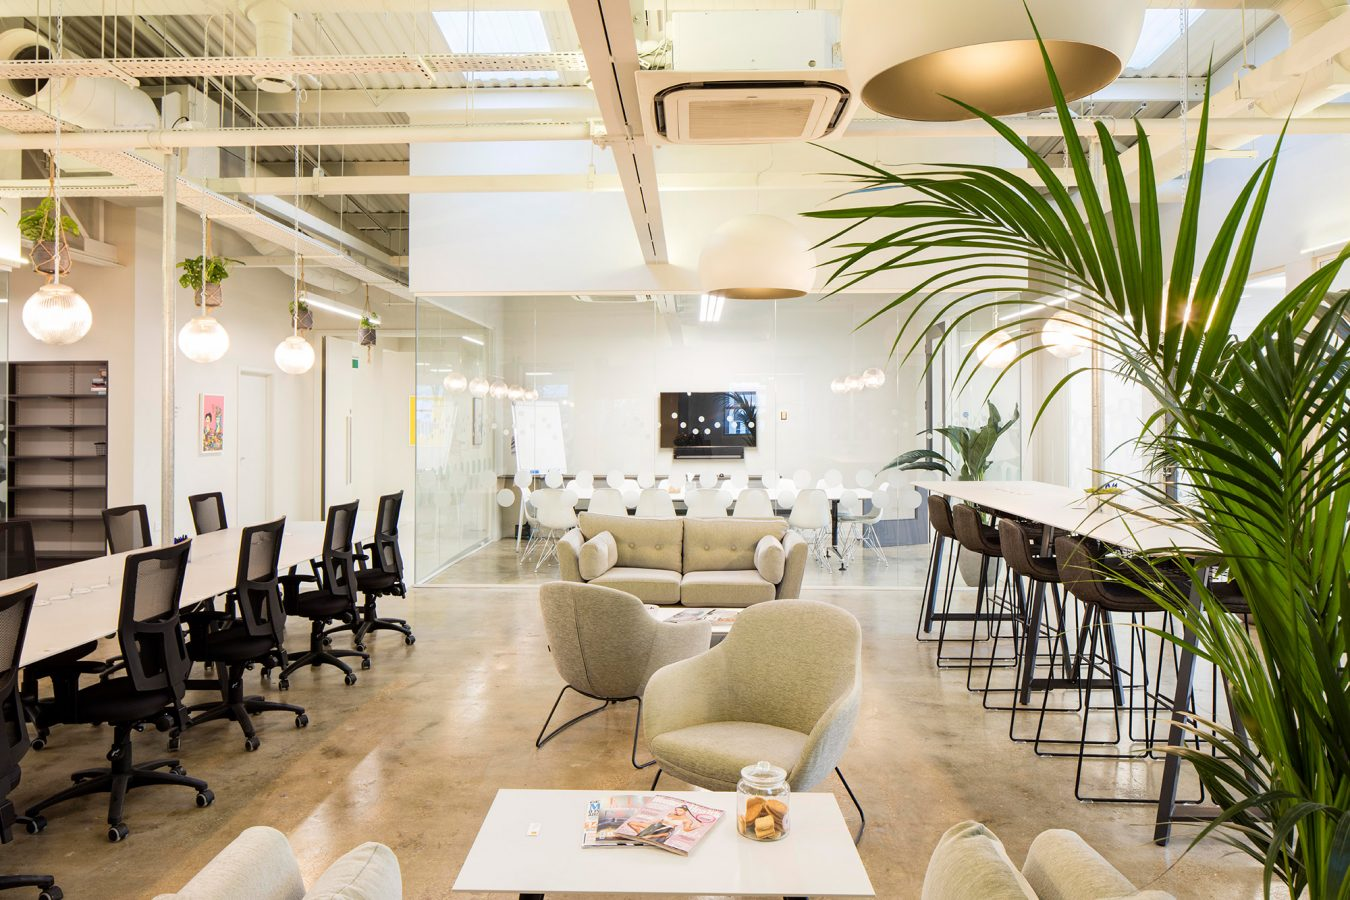 Office fit out design in neutral colours for a co-working space near Finsbury Park.